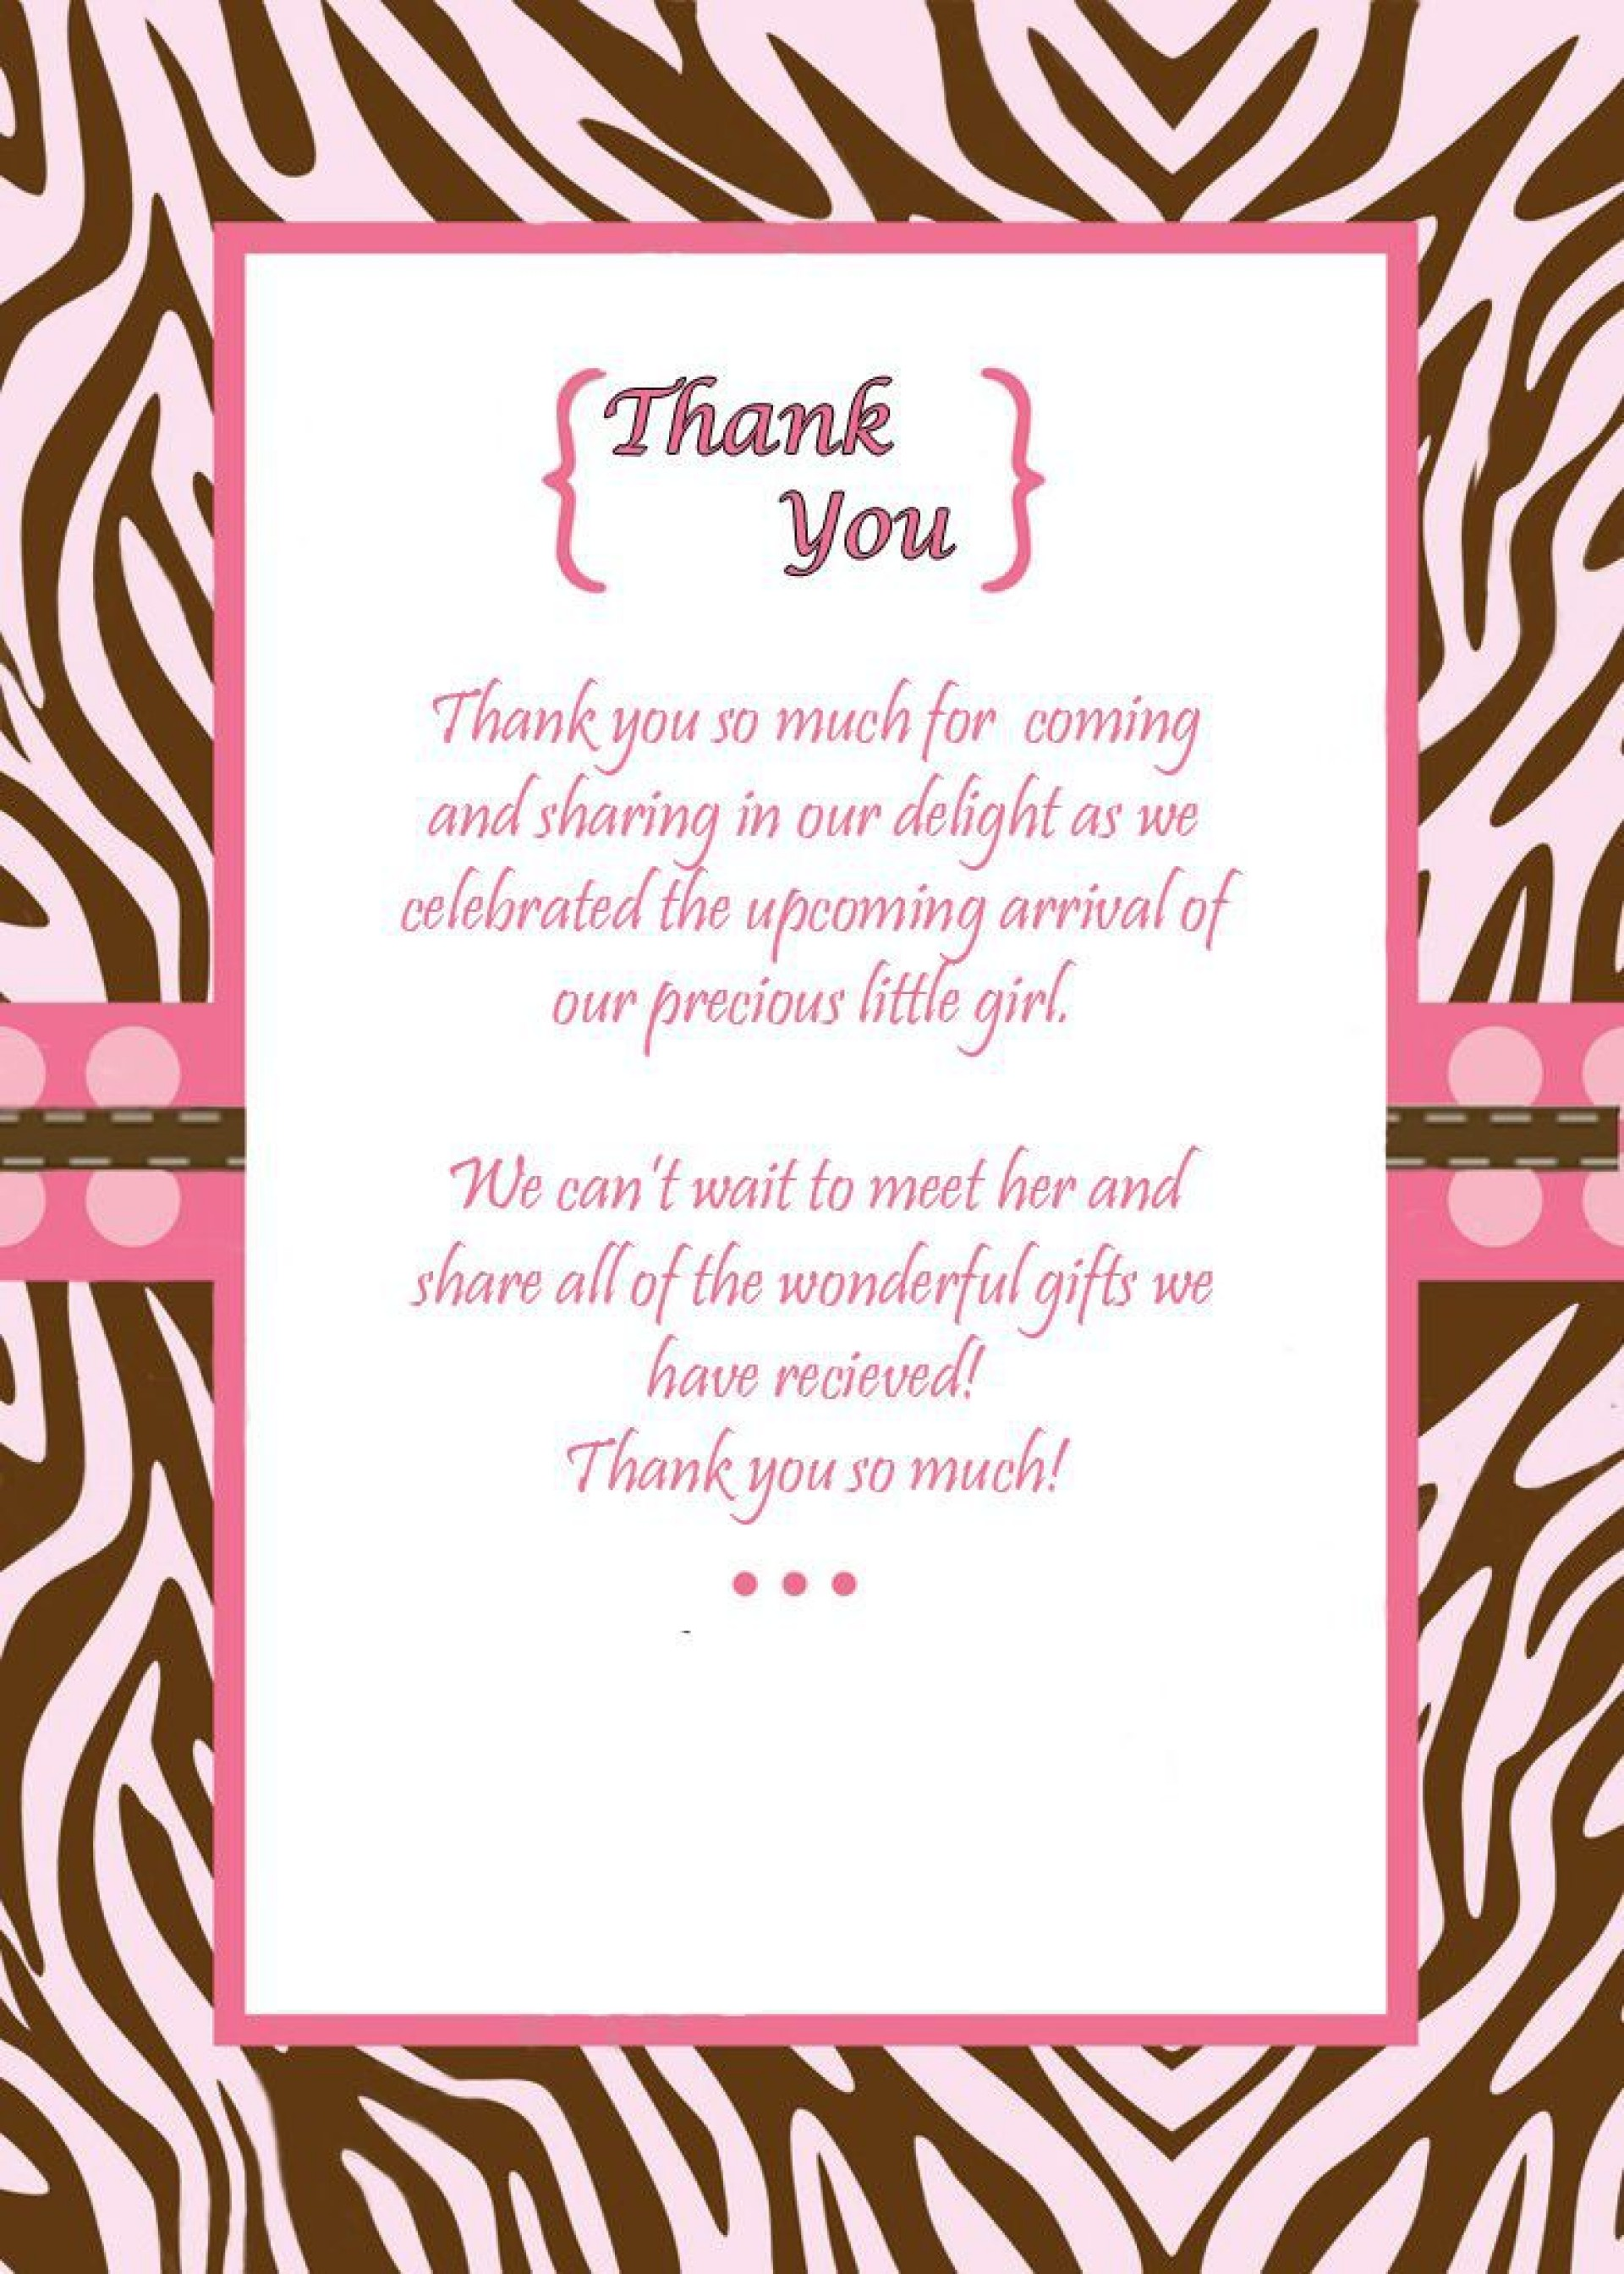 009 Phenomenal Thank You Note Template For Baby Shower Gift Highest Clarity  Card Letter Sample1920